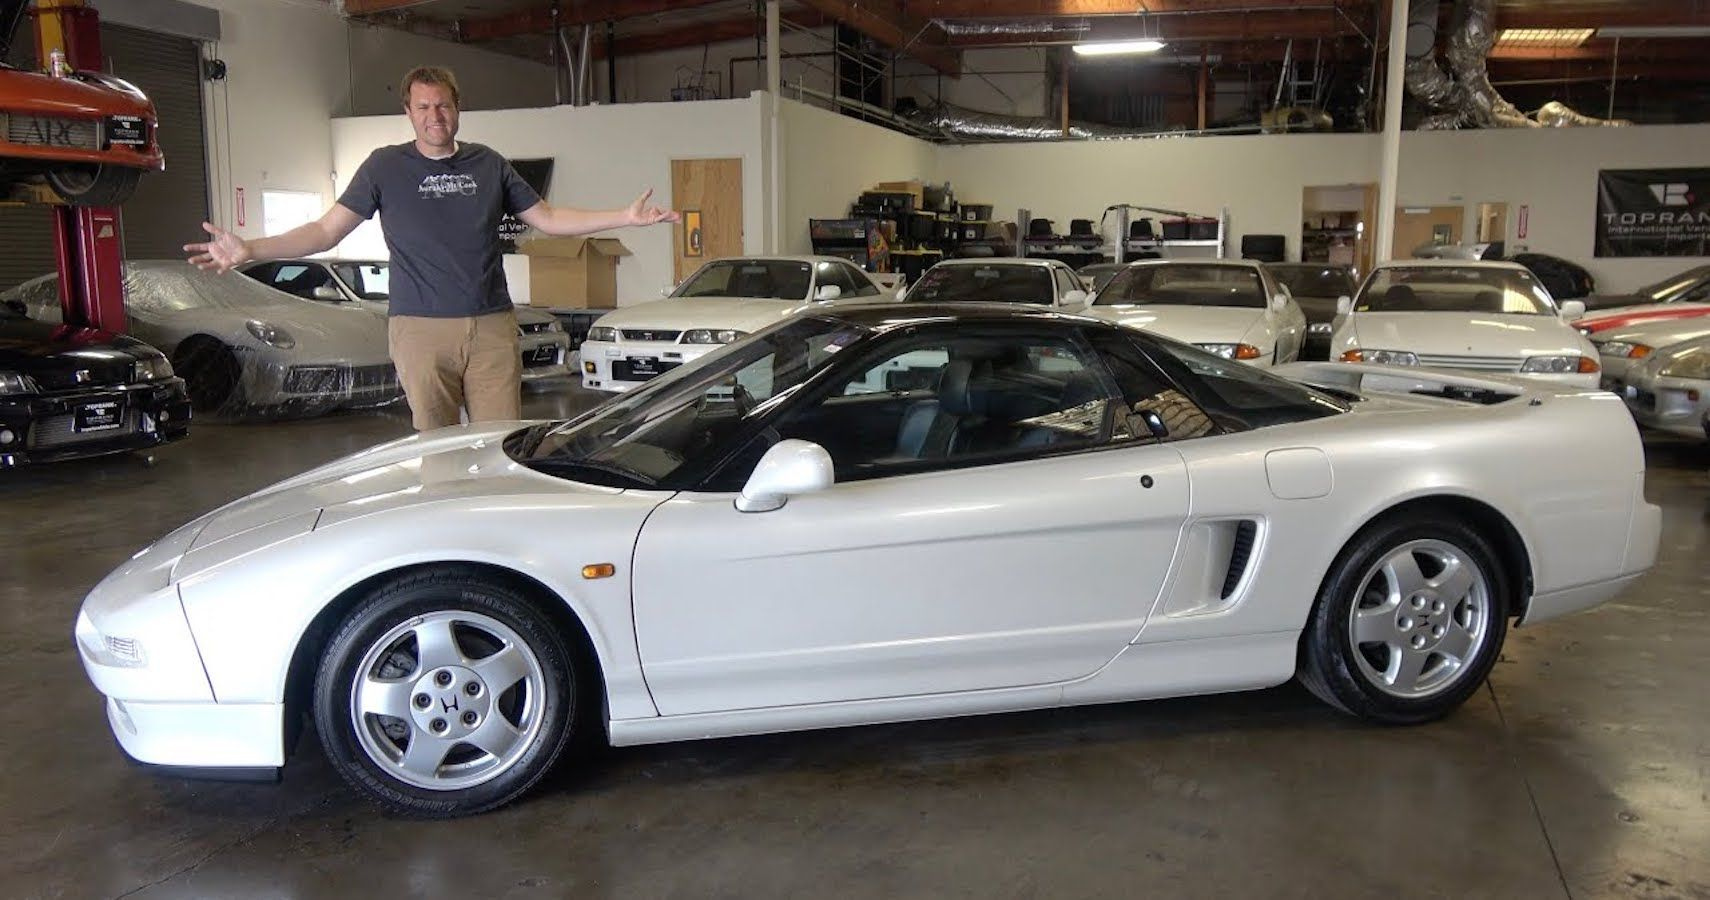 Doug DeMuro Explains Why The Original Acura NSX Is Skyrocketing In Price